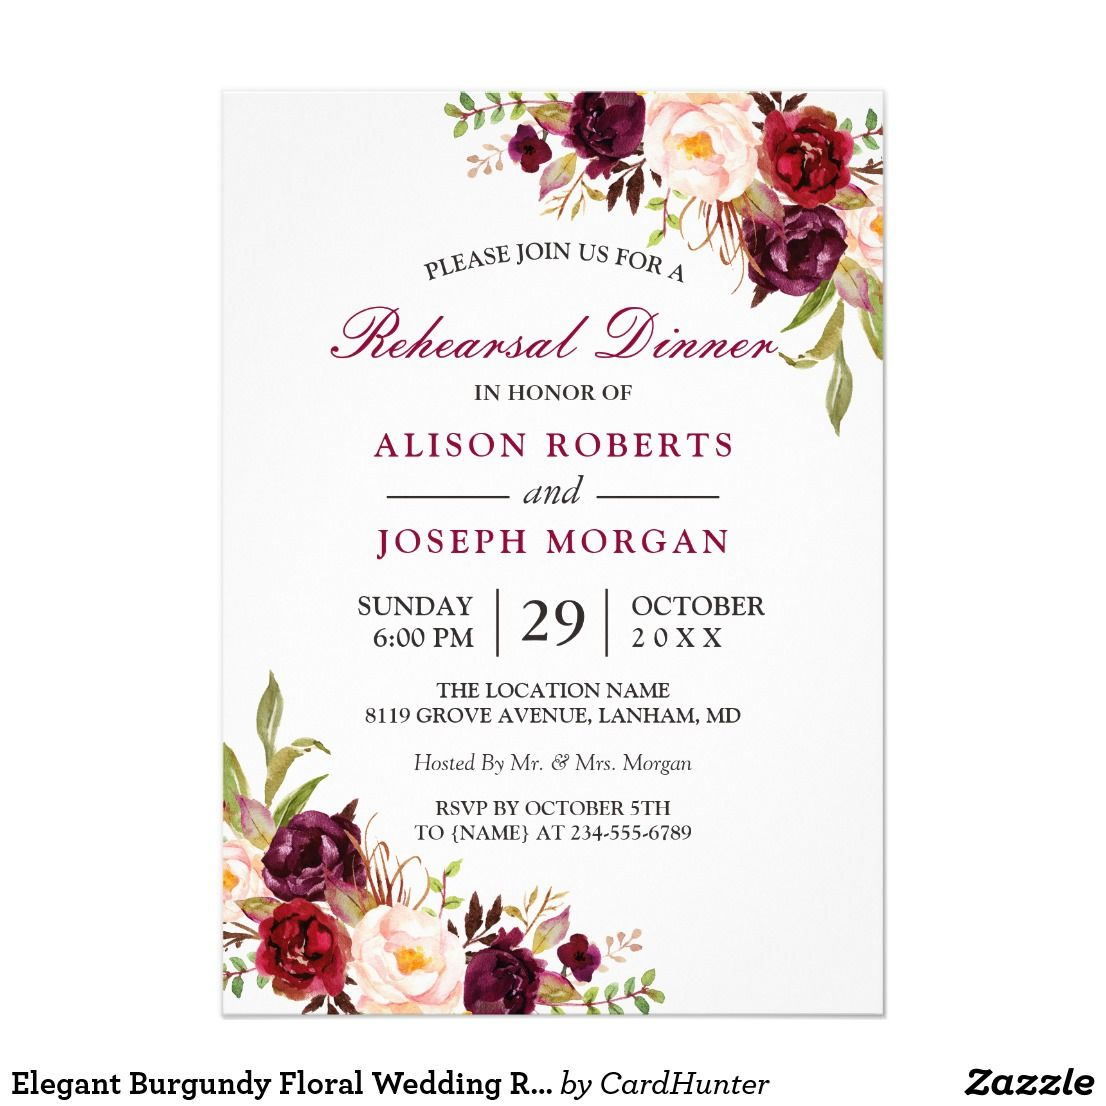 Elegant burgundy floral wedding rehearsal dinner invitation pinterest elegant burgundy floral wedding rehearsal dinner junglespirit Image collections